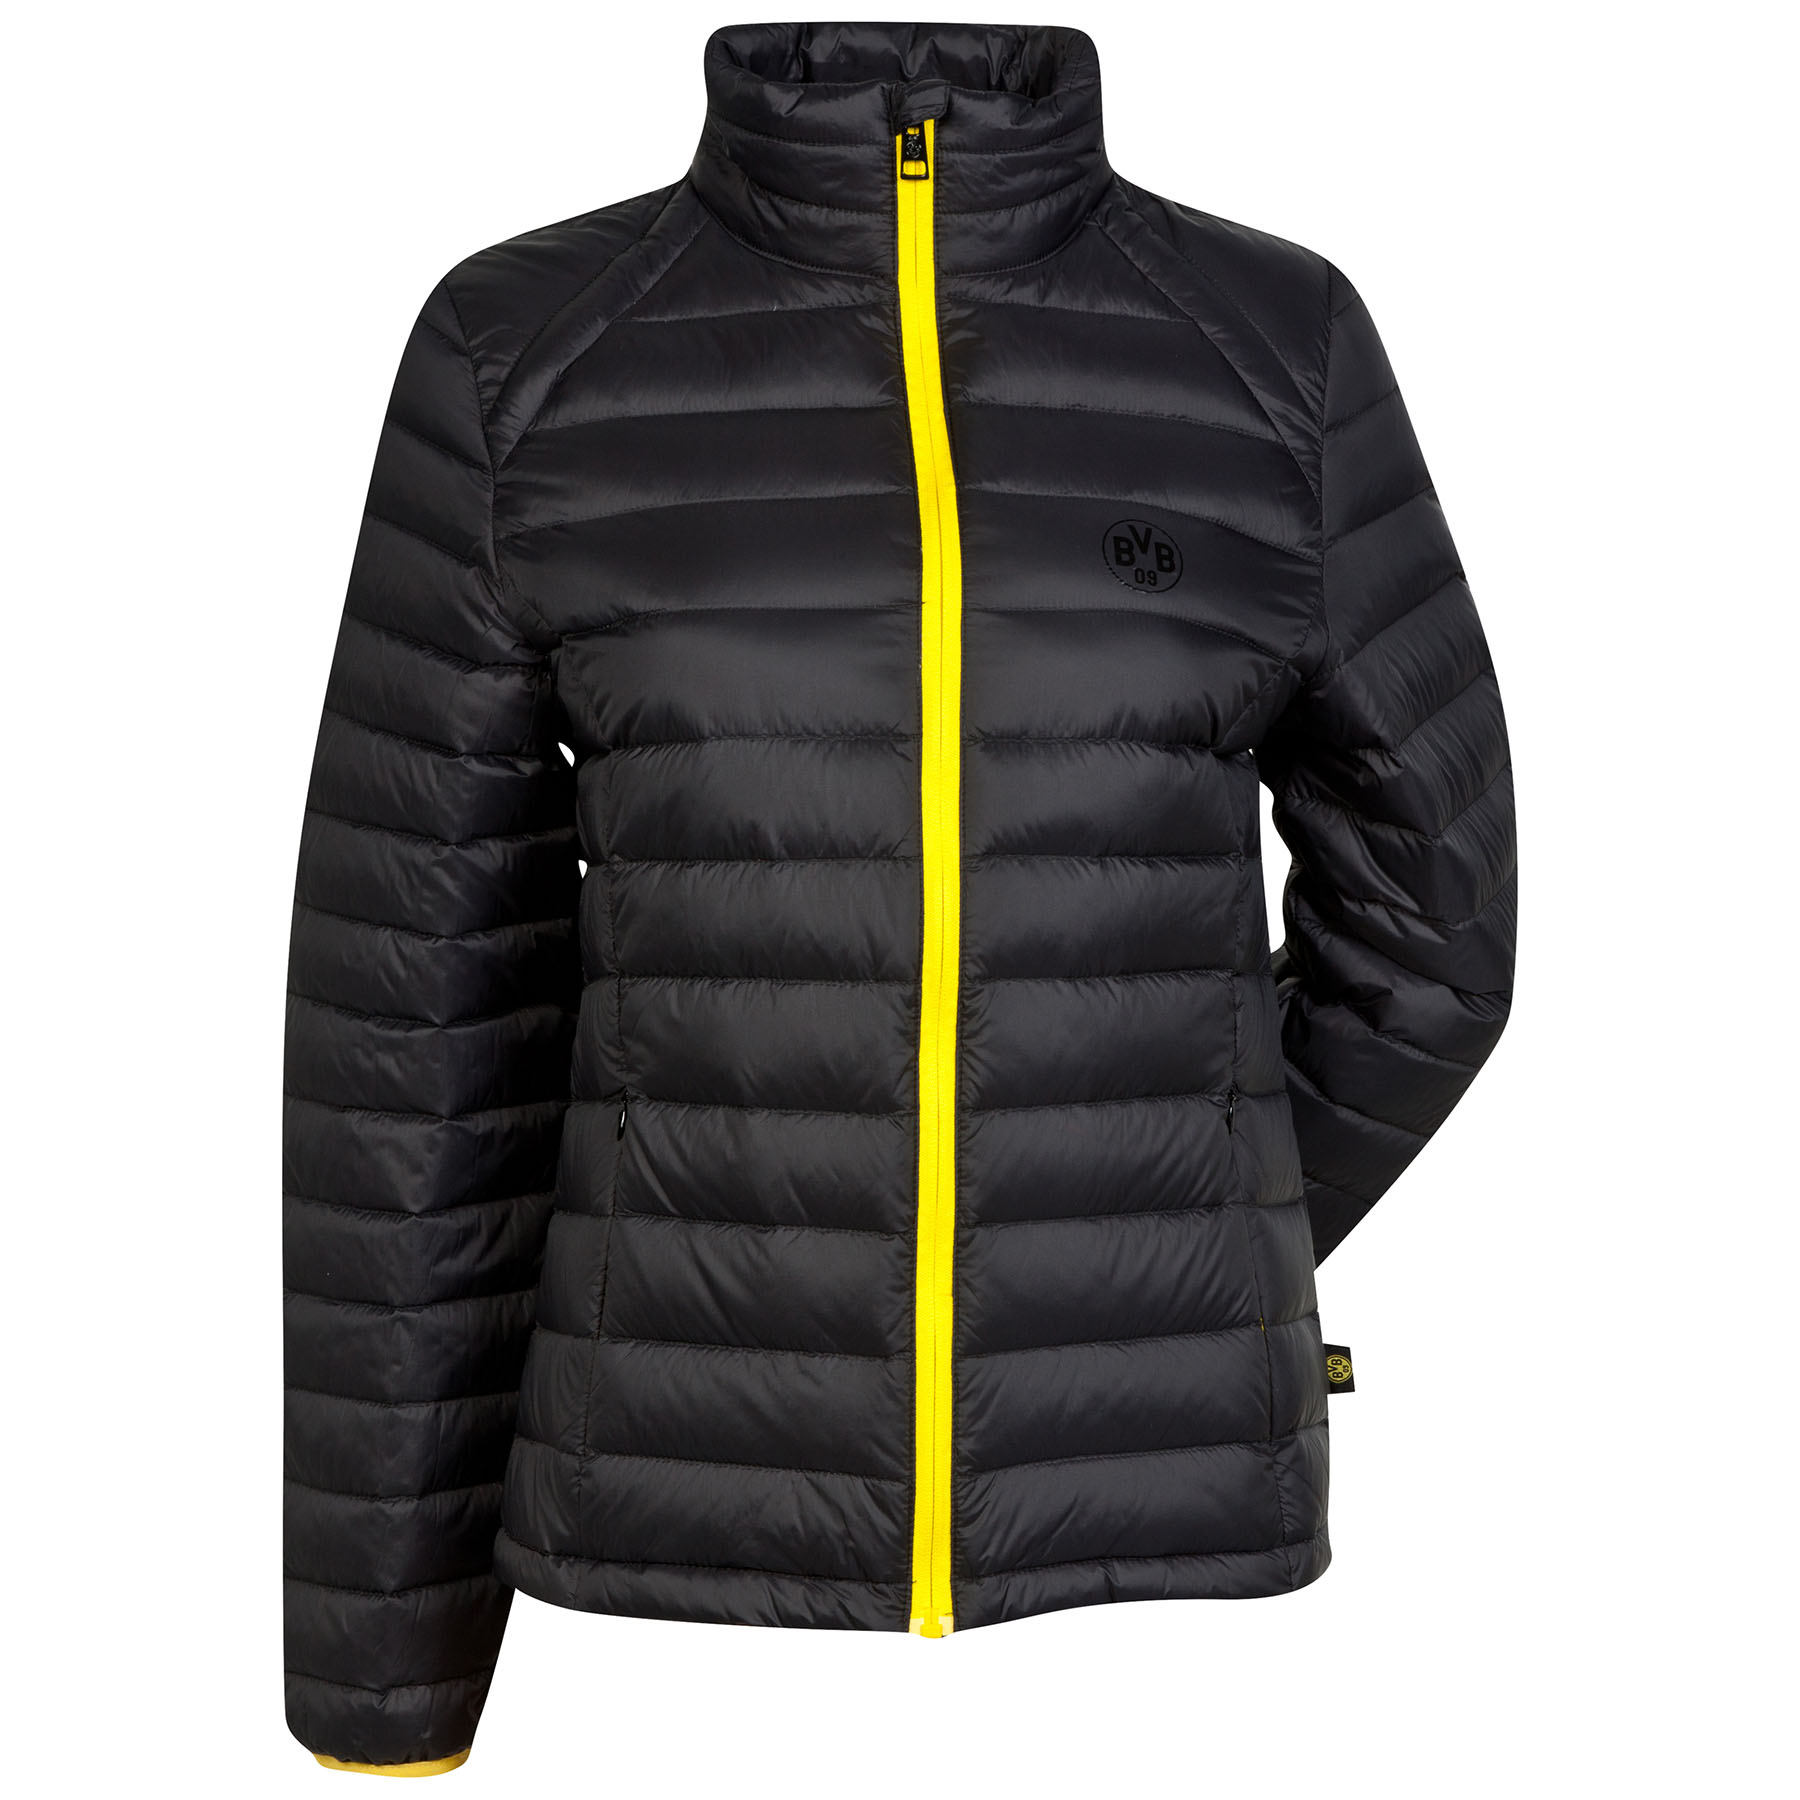 BVB Padded Jacket - Black - Womens